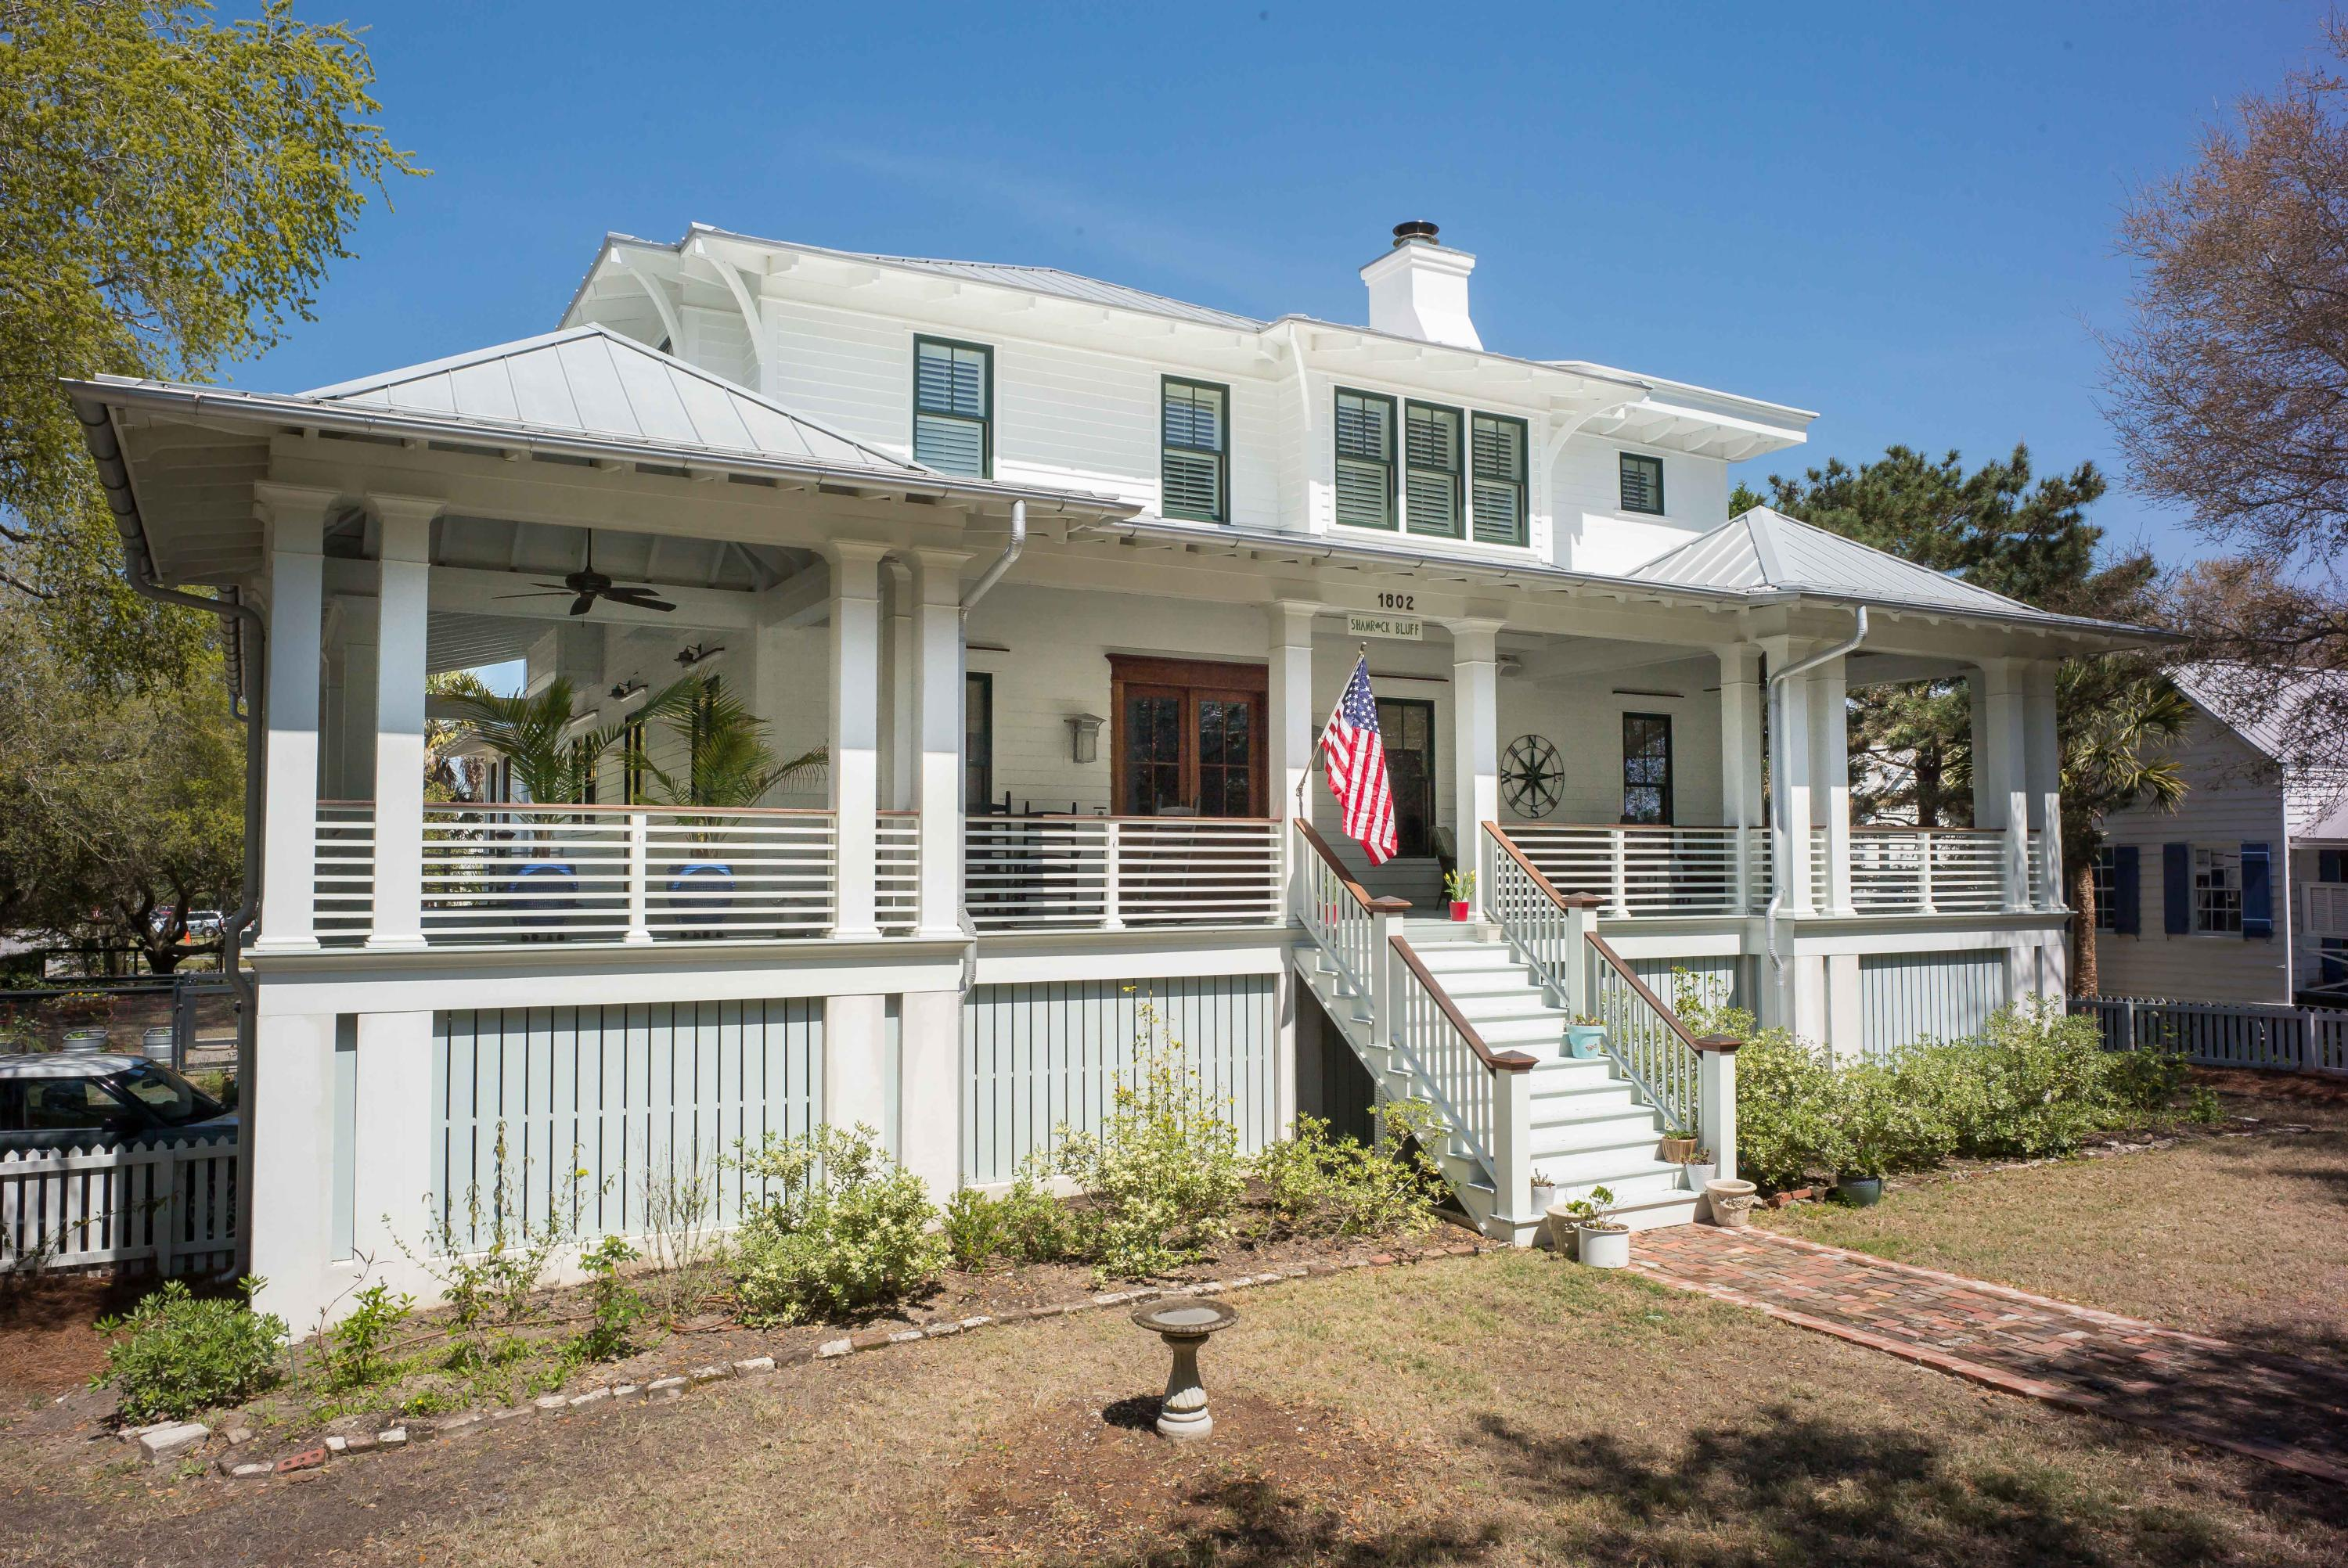 Sullivans Island Homes For Sale - 1802 Ion, Sullivans Island, SC - 10